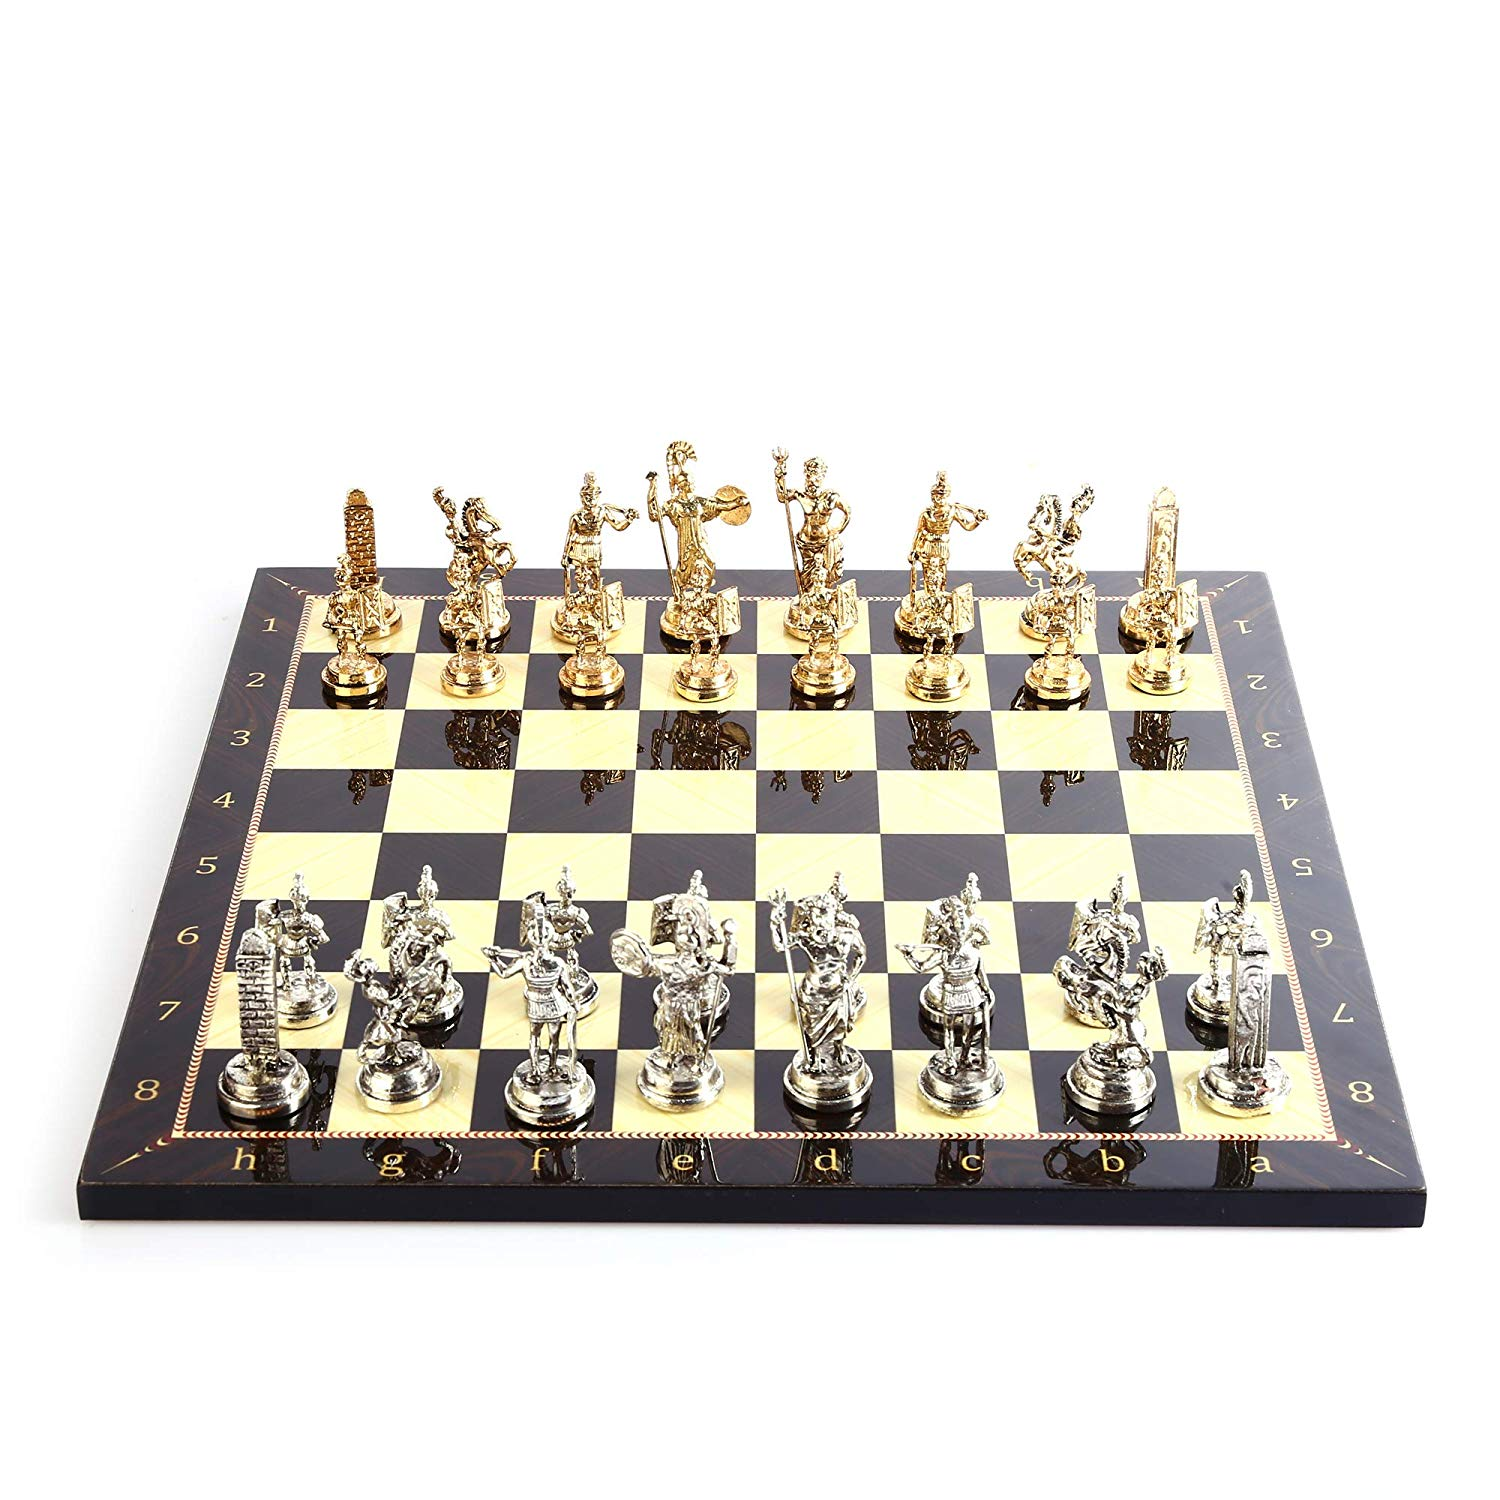 Historical Rome Figures Metal Chess Set For Adult,Handmade Pieces And Walnut Patterned Wood Chess Board Kıng 7 Cm